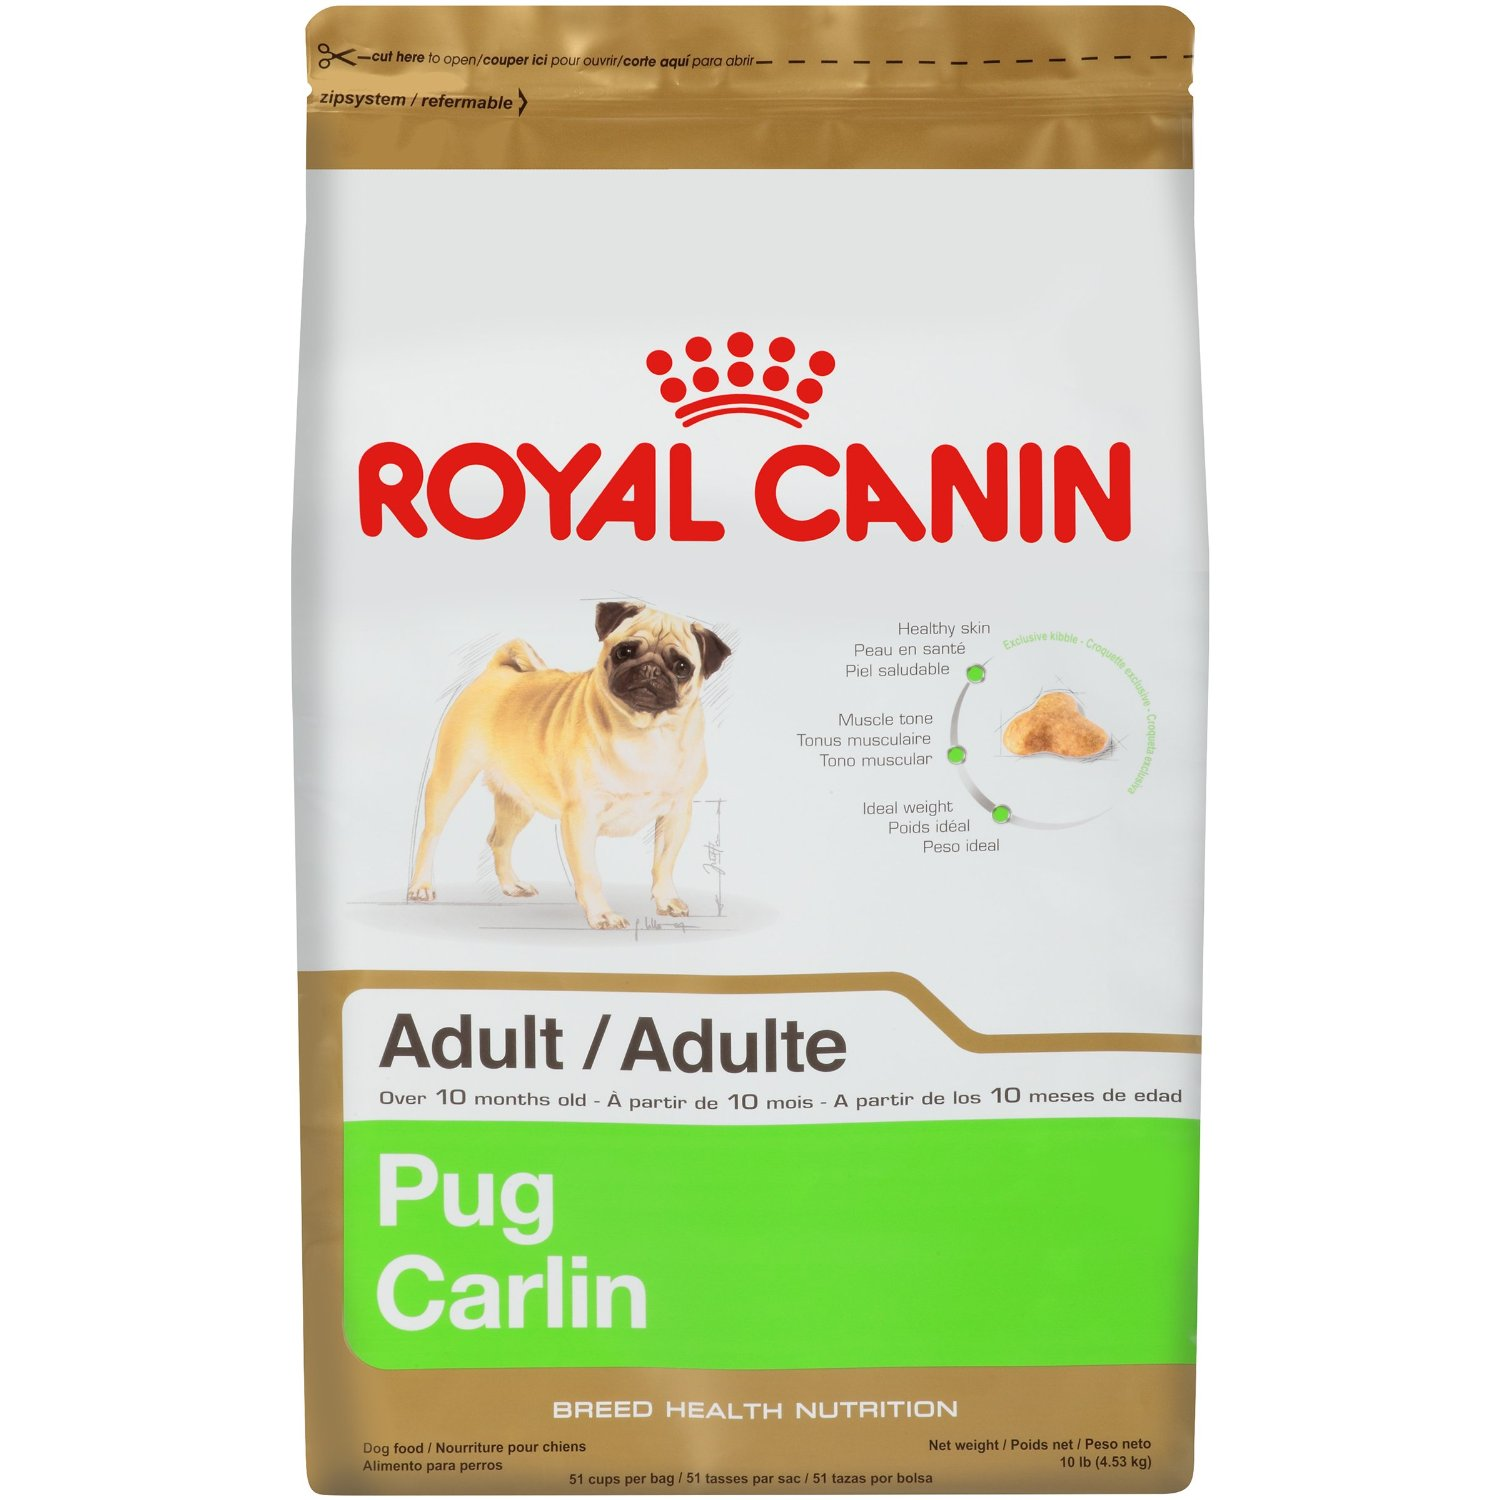 Royal Canin Pug Dog Food